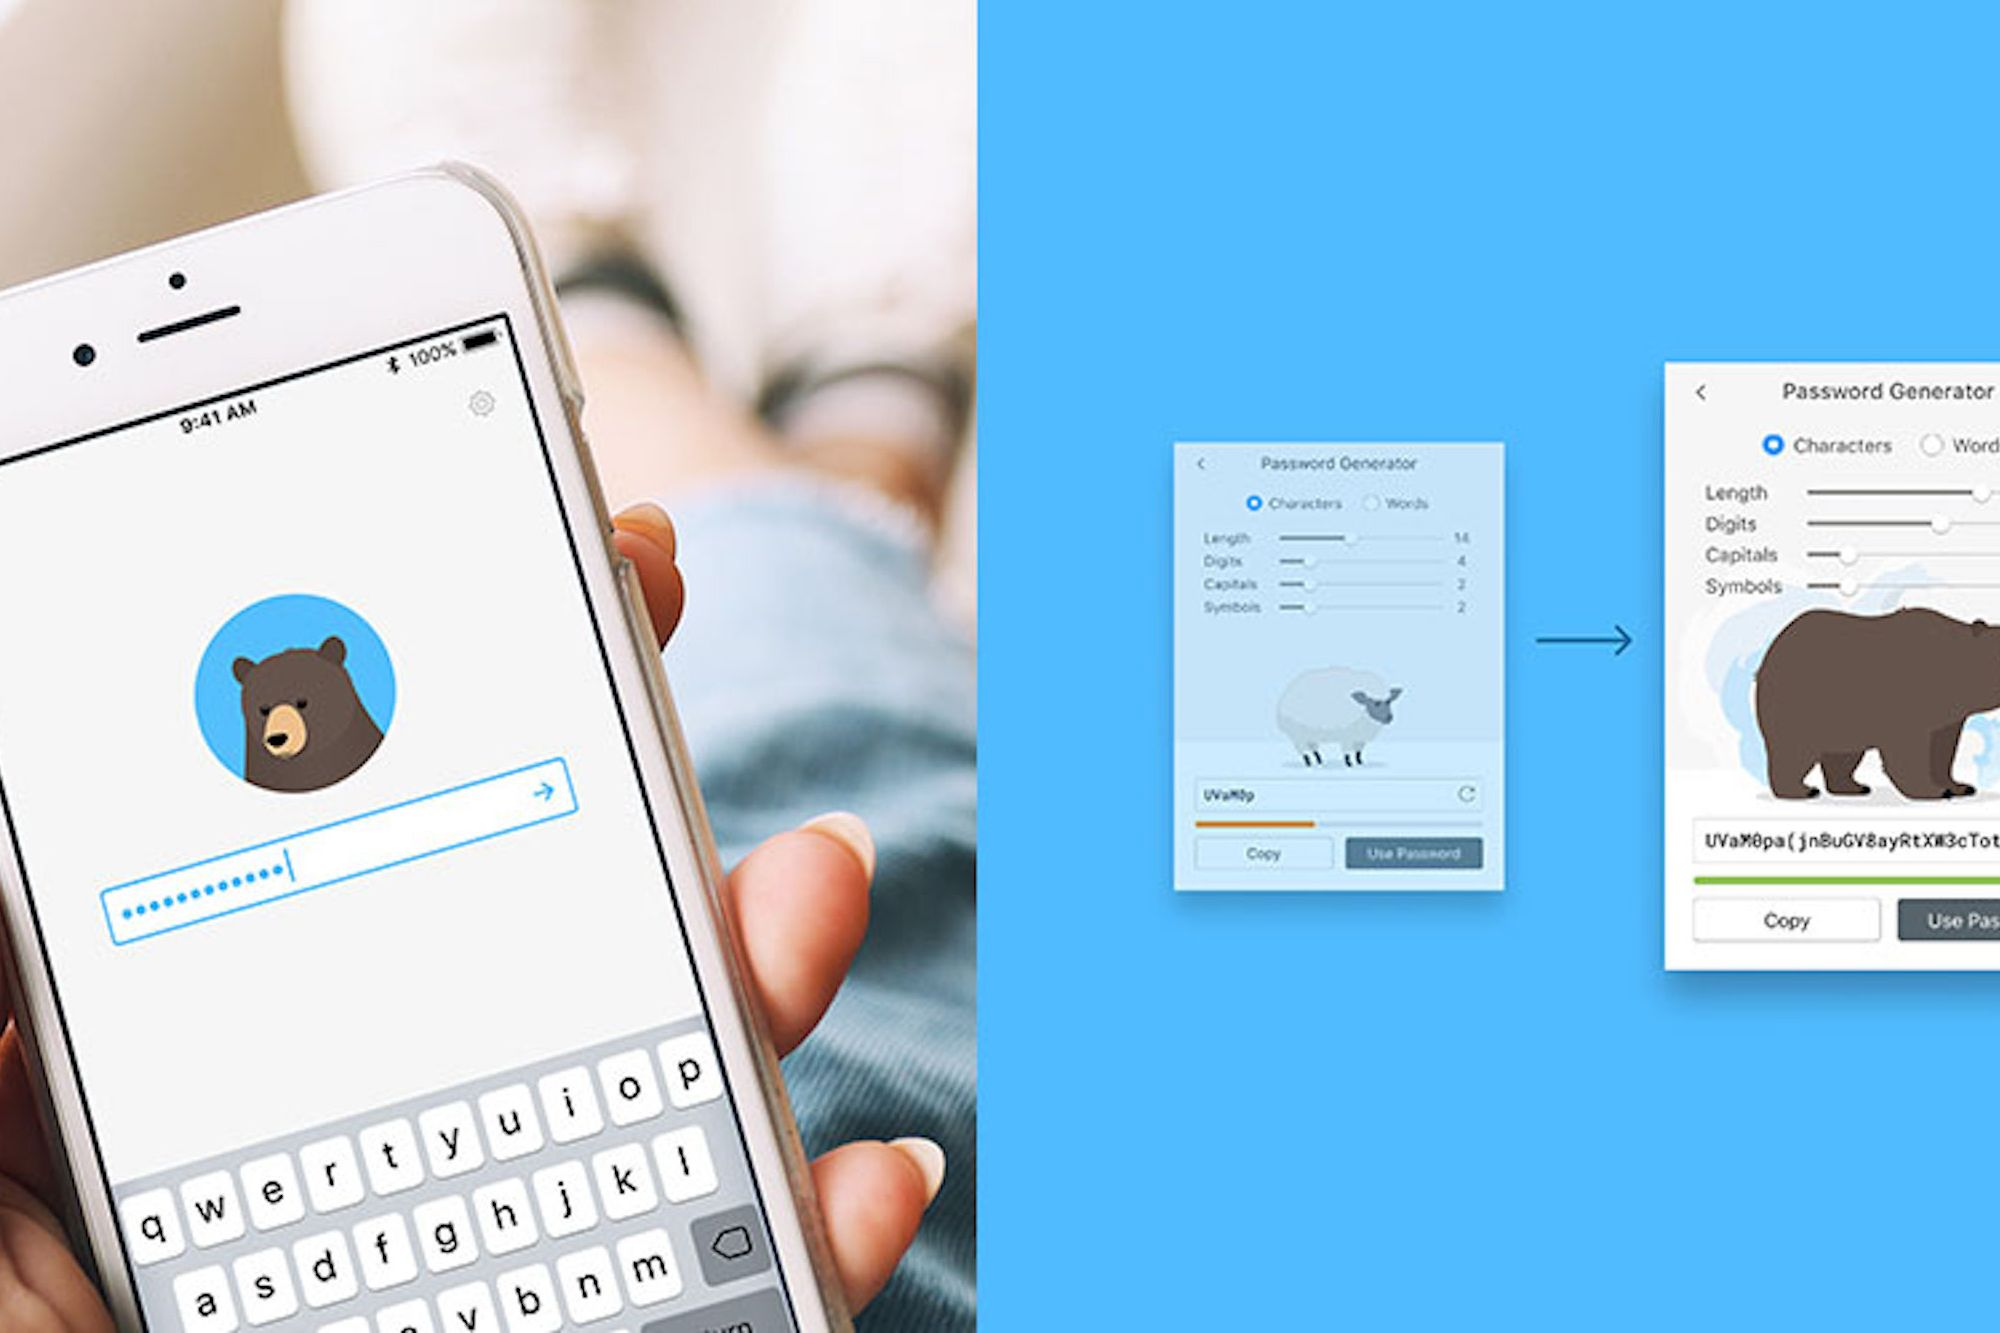 This Simple App Securely Manages Your Passwords Seamlessly